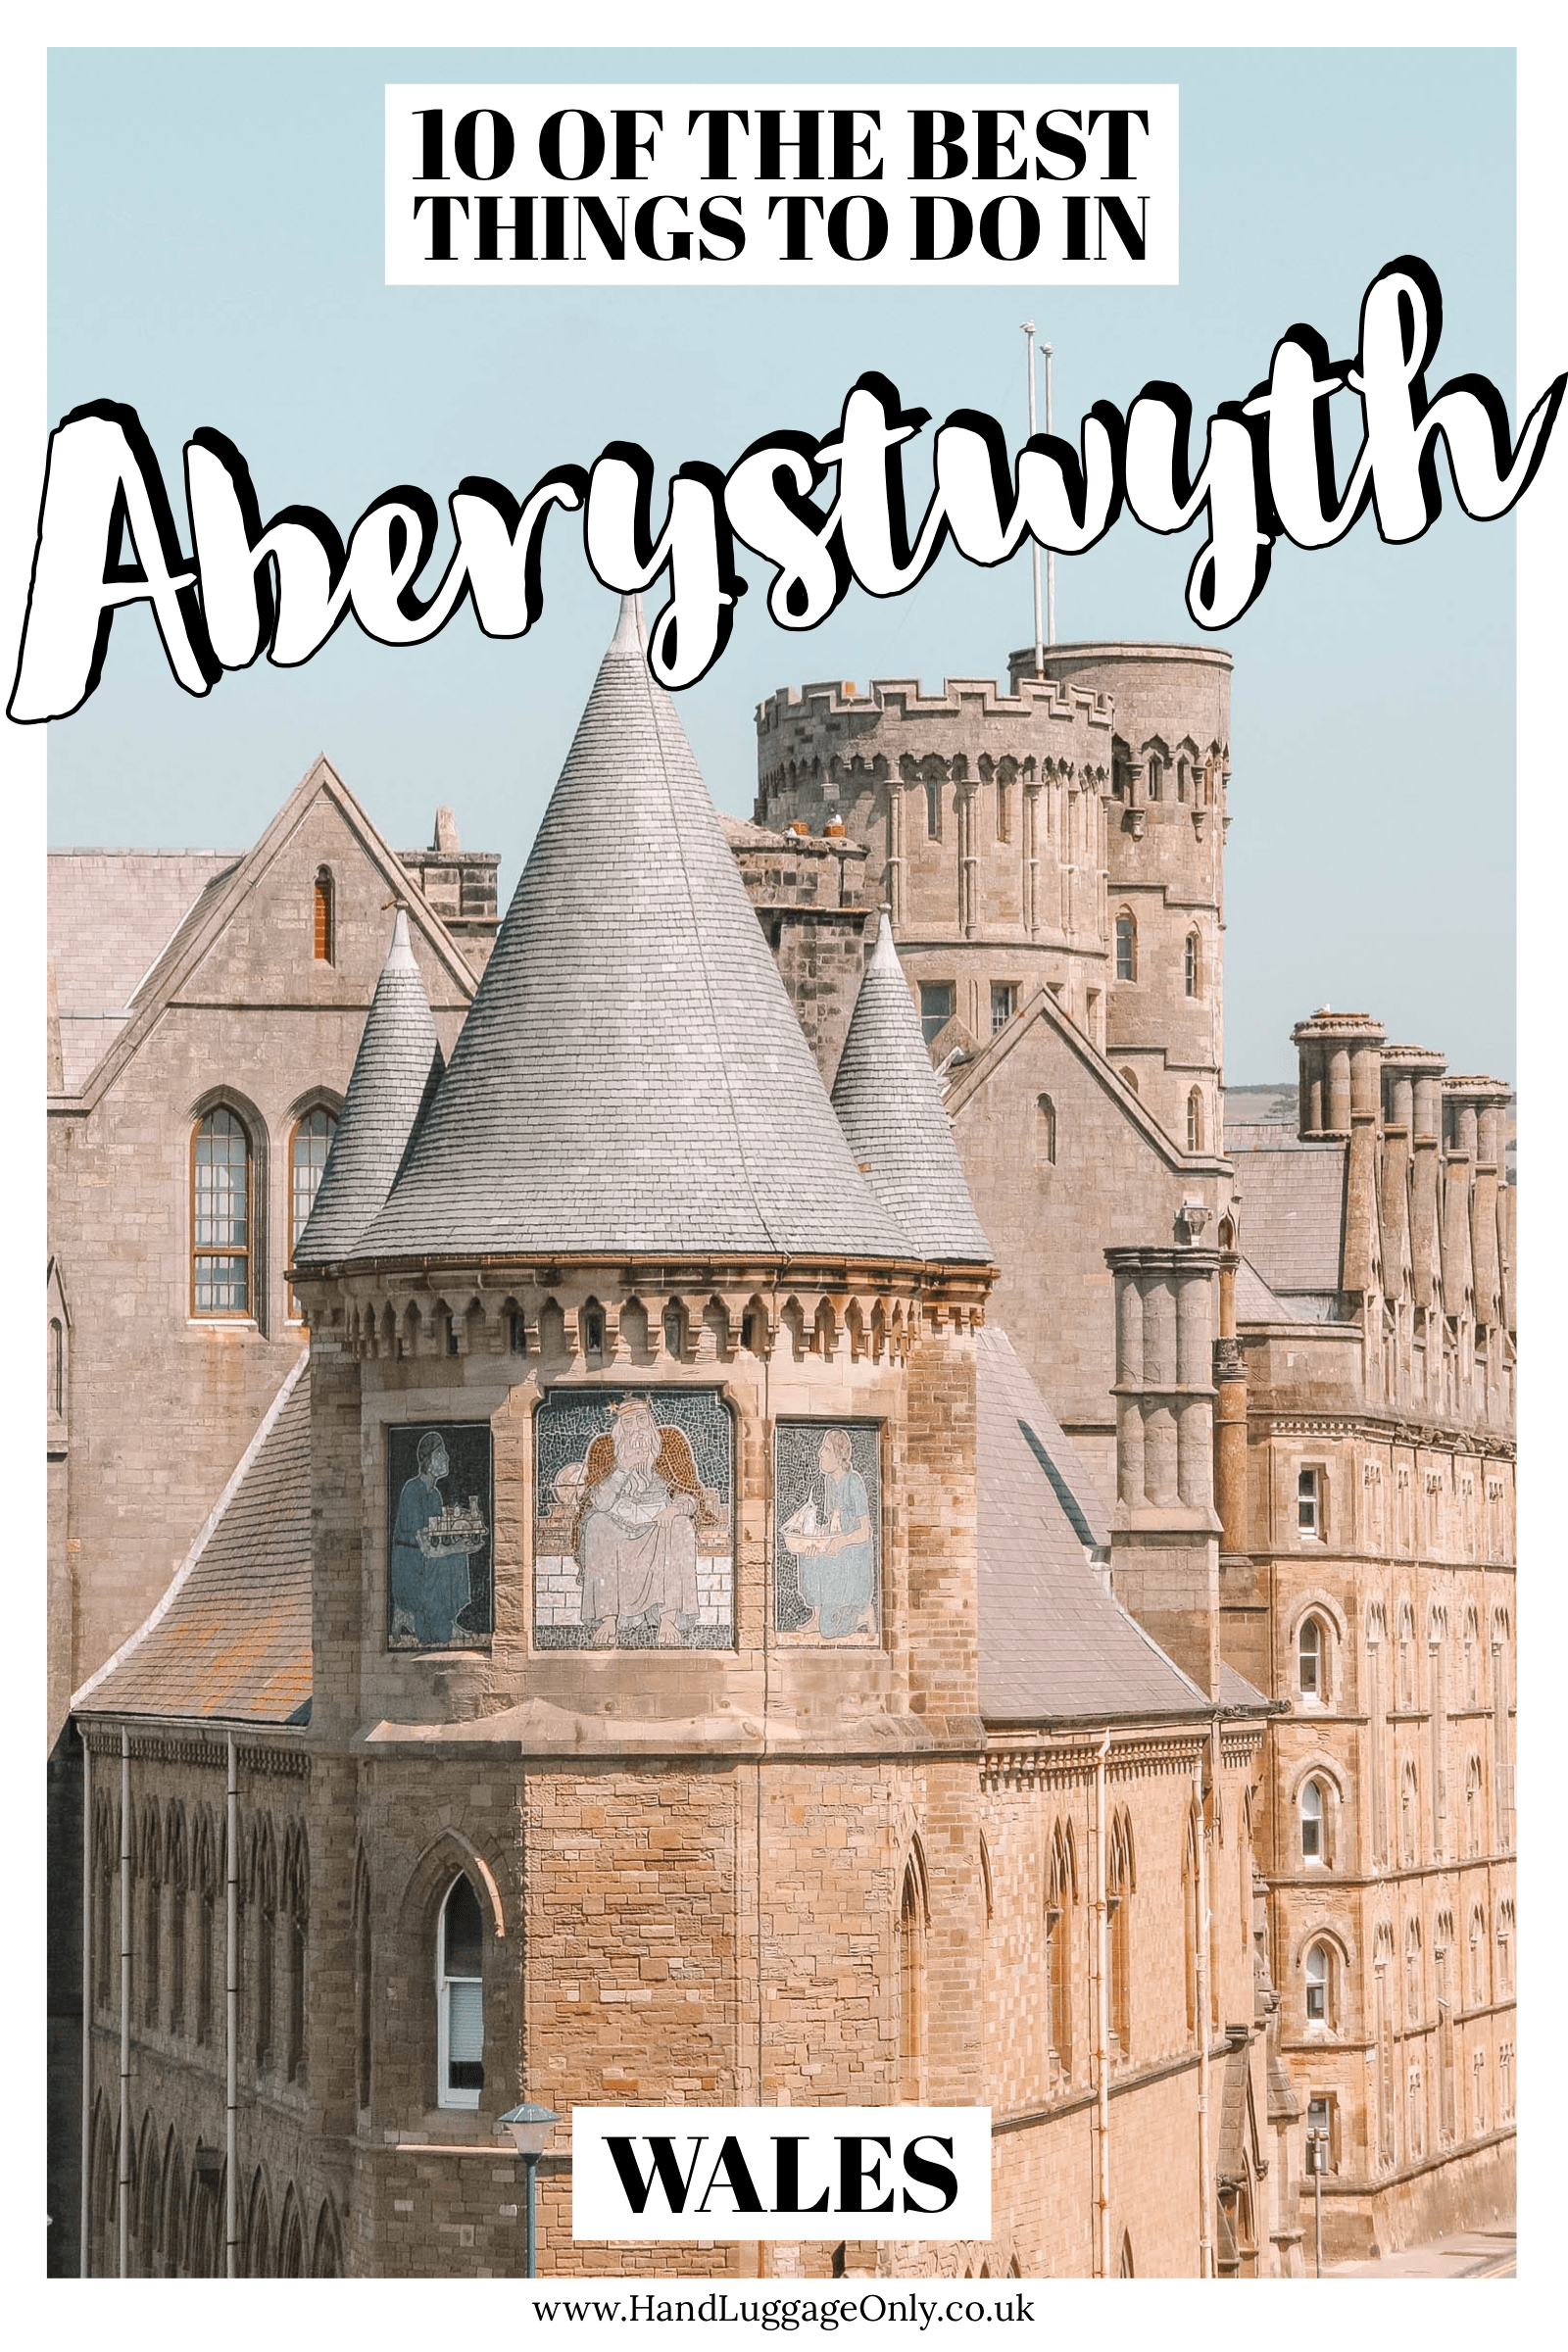 10 Best Things To Do In Aberystwyth - Wales (1)